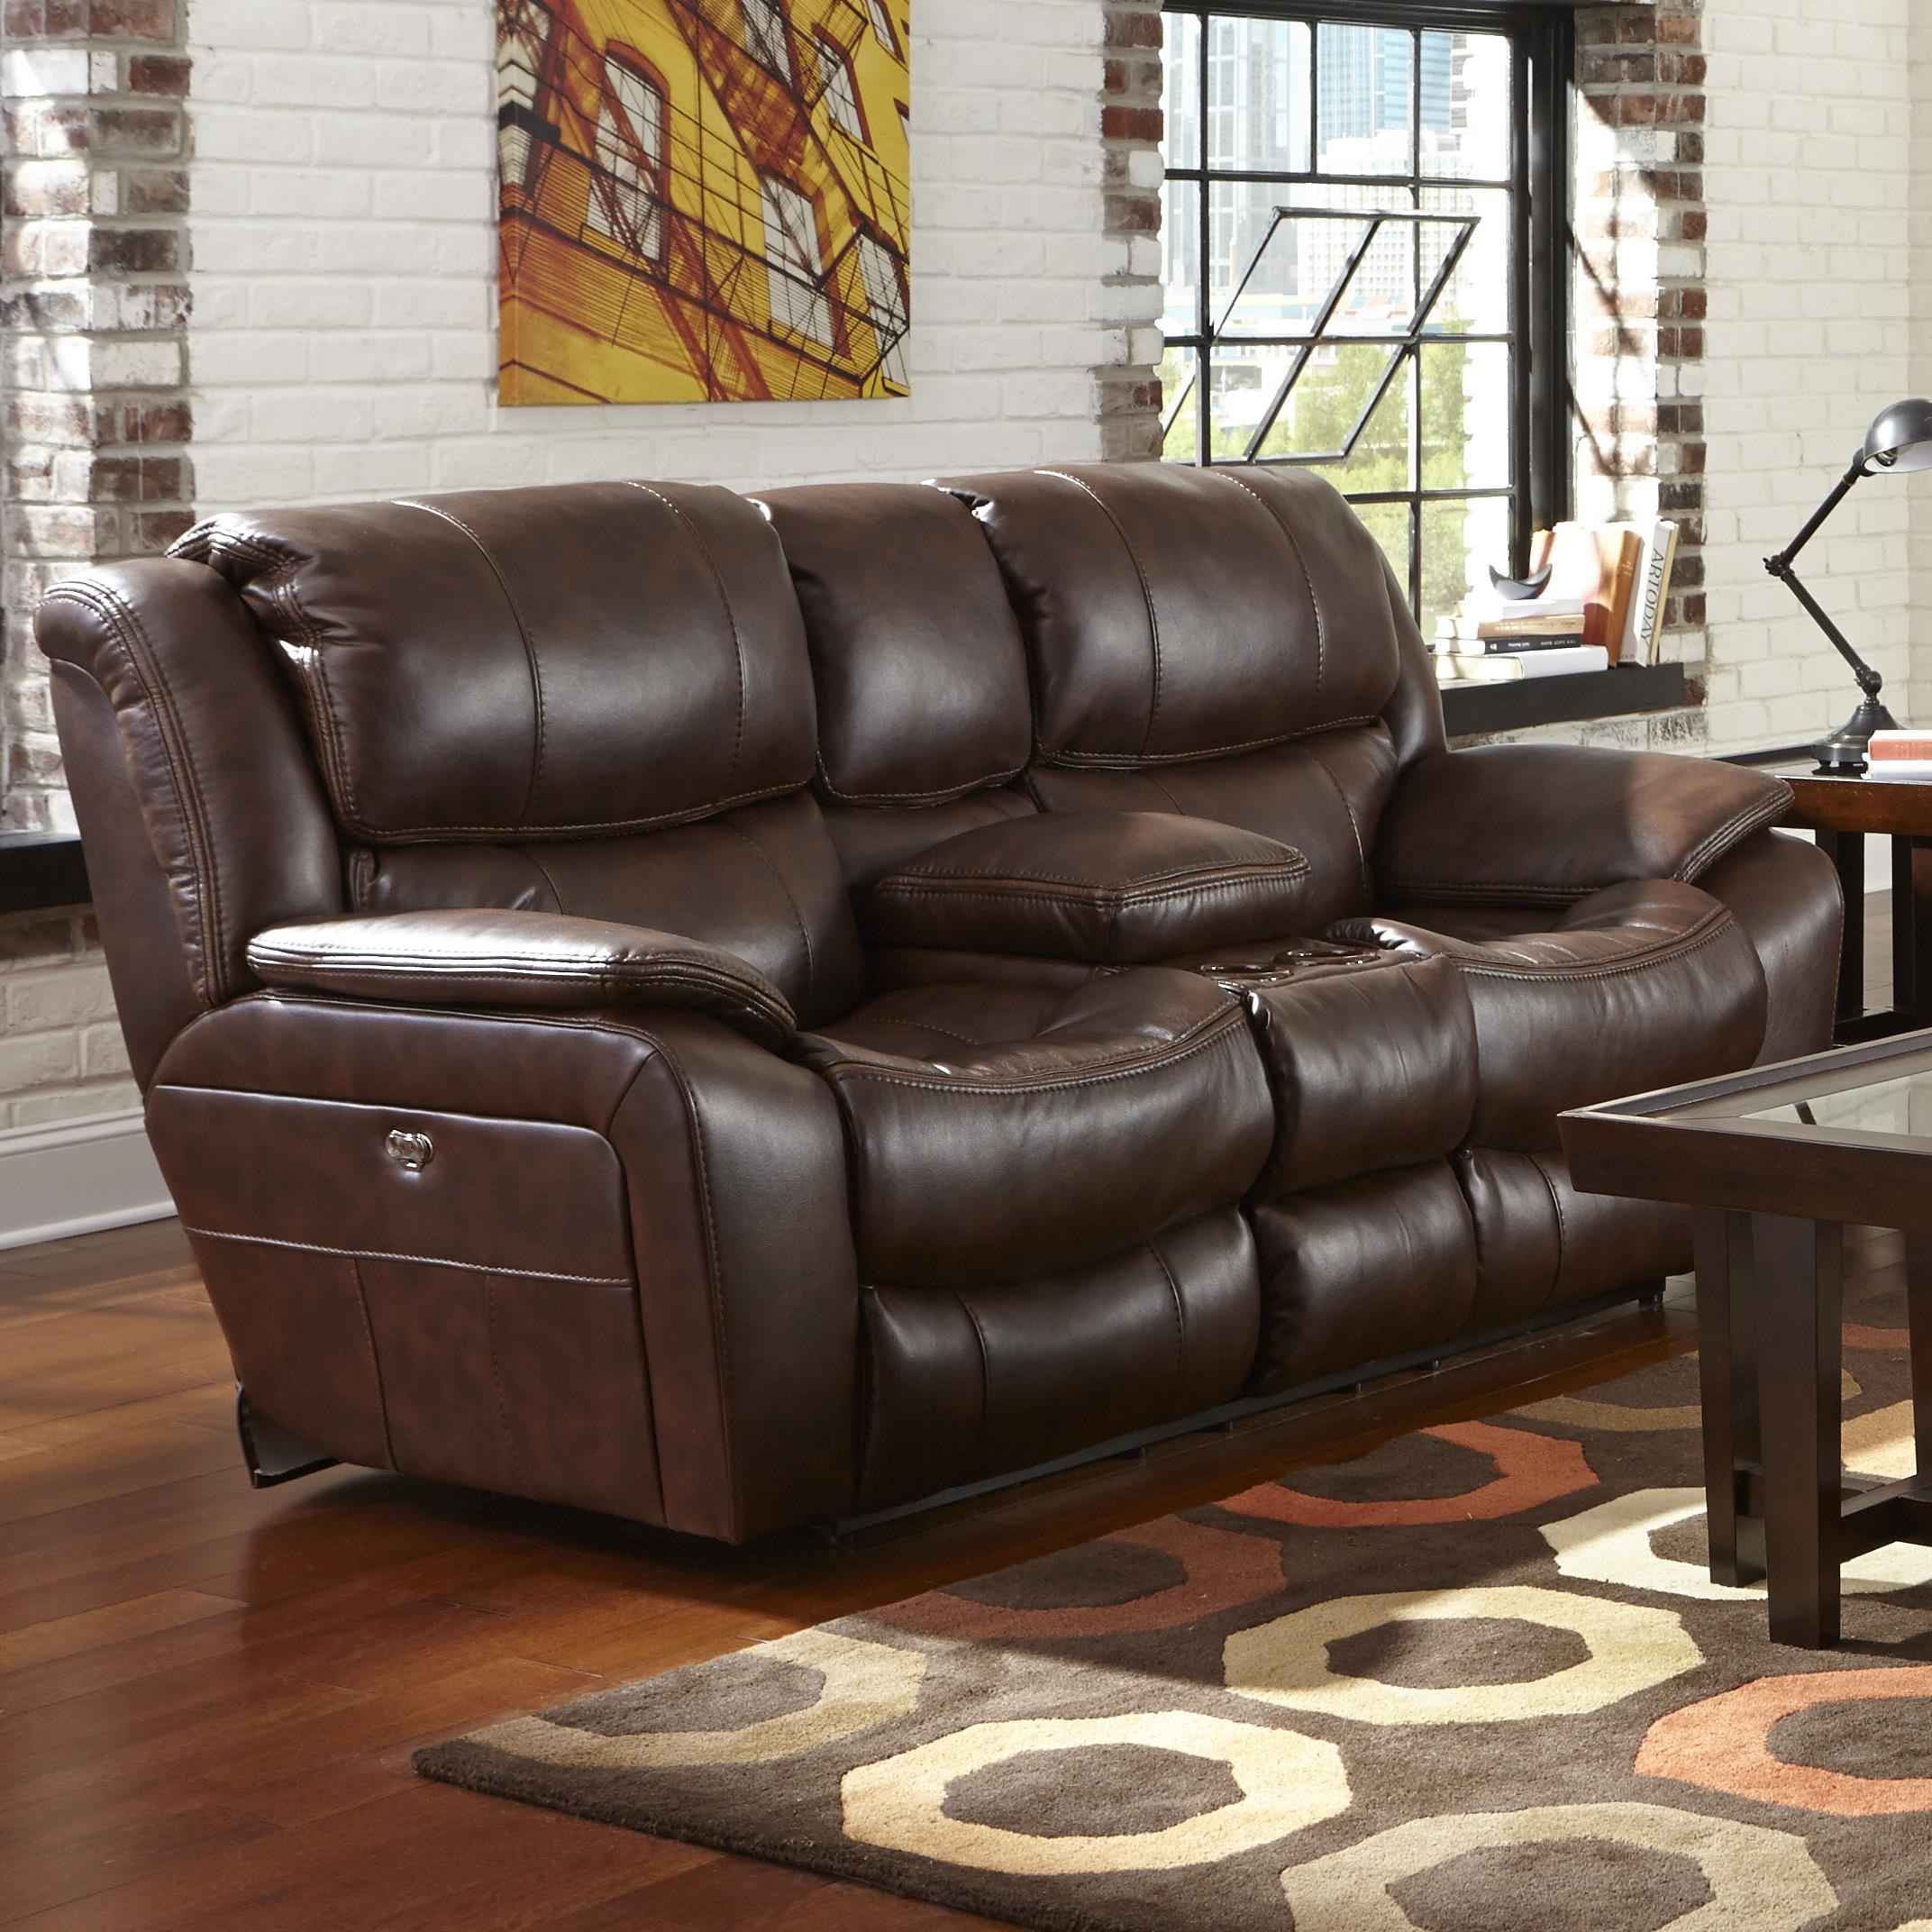 Reclining Loveseat With Usb Port Cup Holders And Storage Console By Catnapper Wolf And